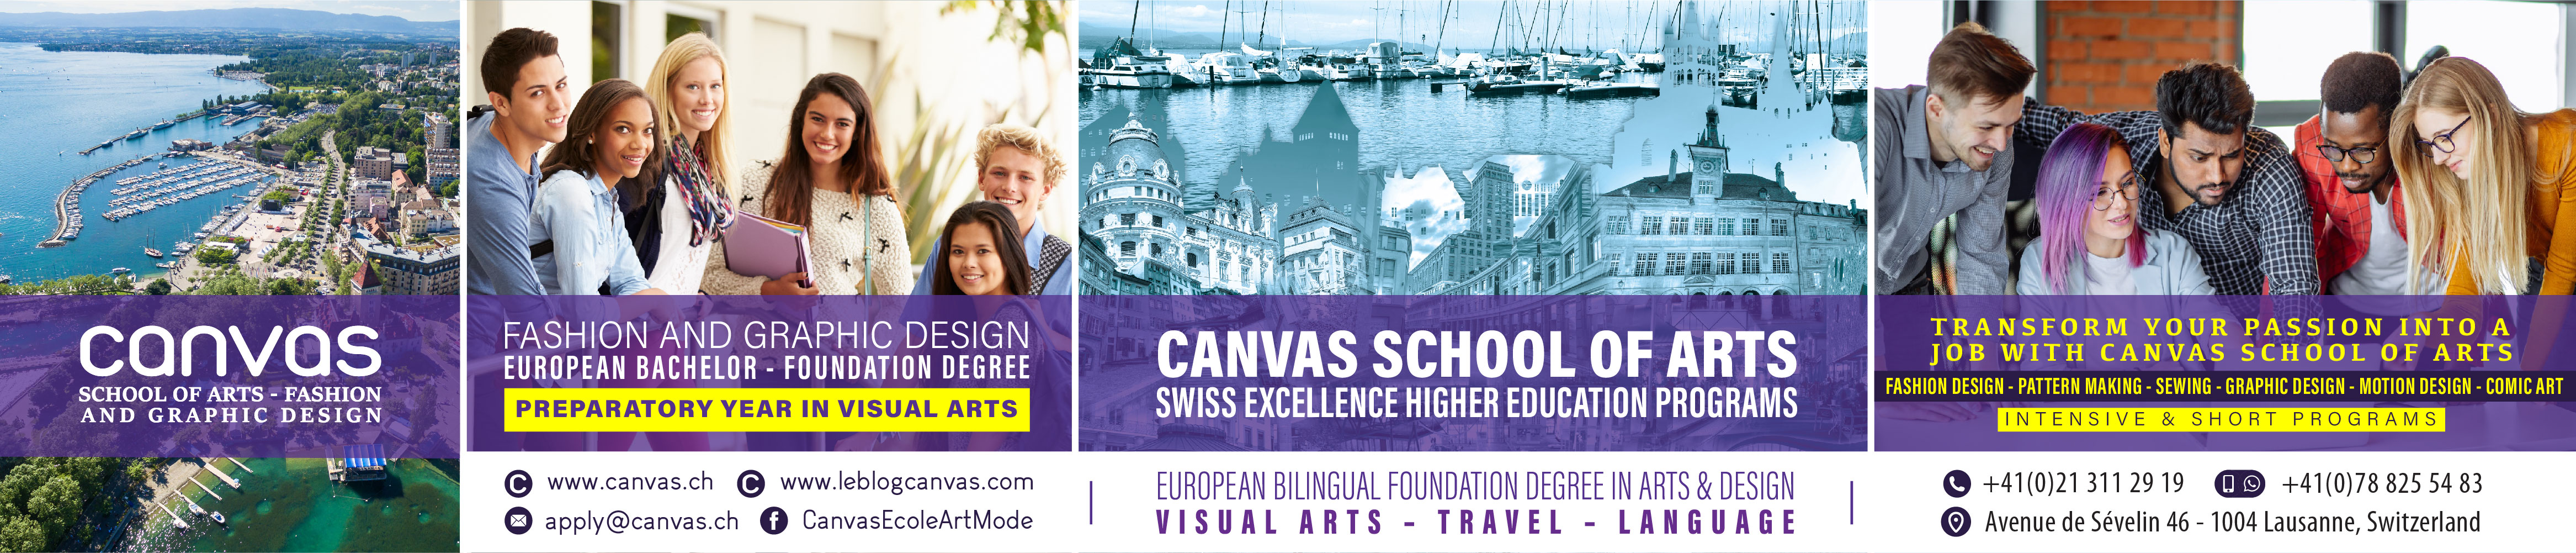 Canvas School of Arts banner